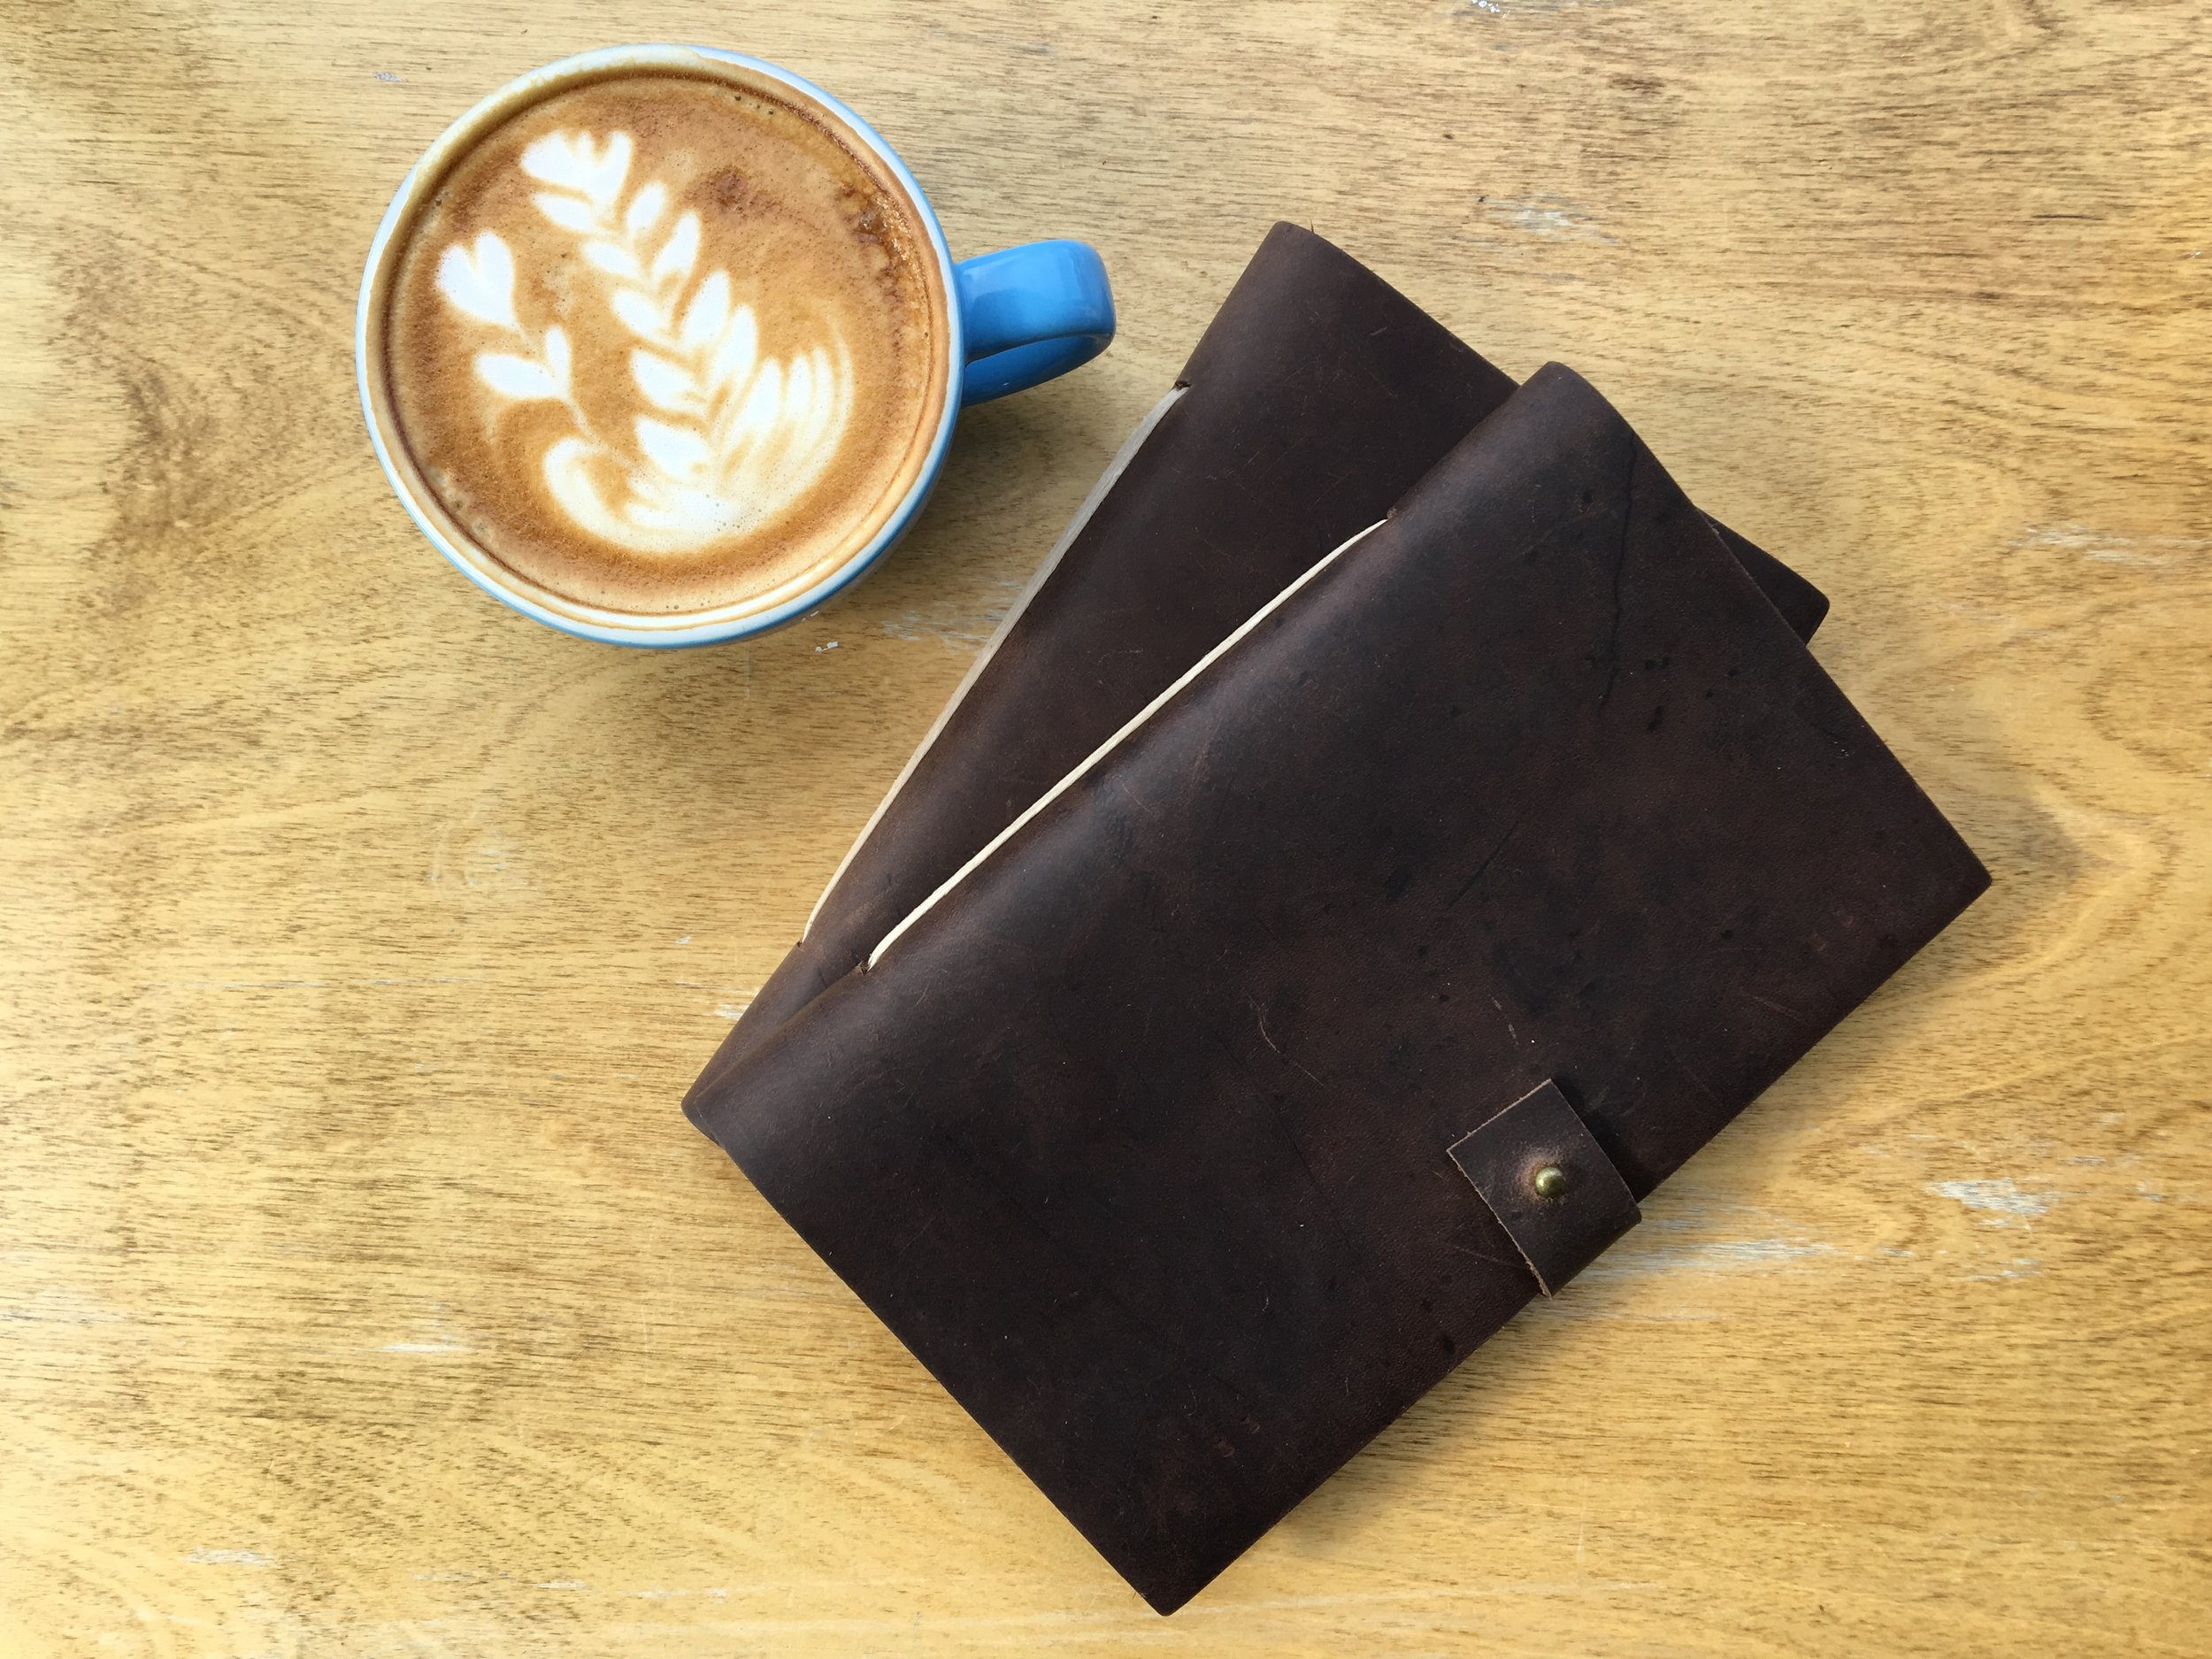 Unbound - Hand-made leather notebooks inspired by a rugged lifestyle and a drive to explore, dream and create